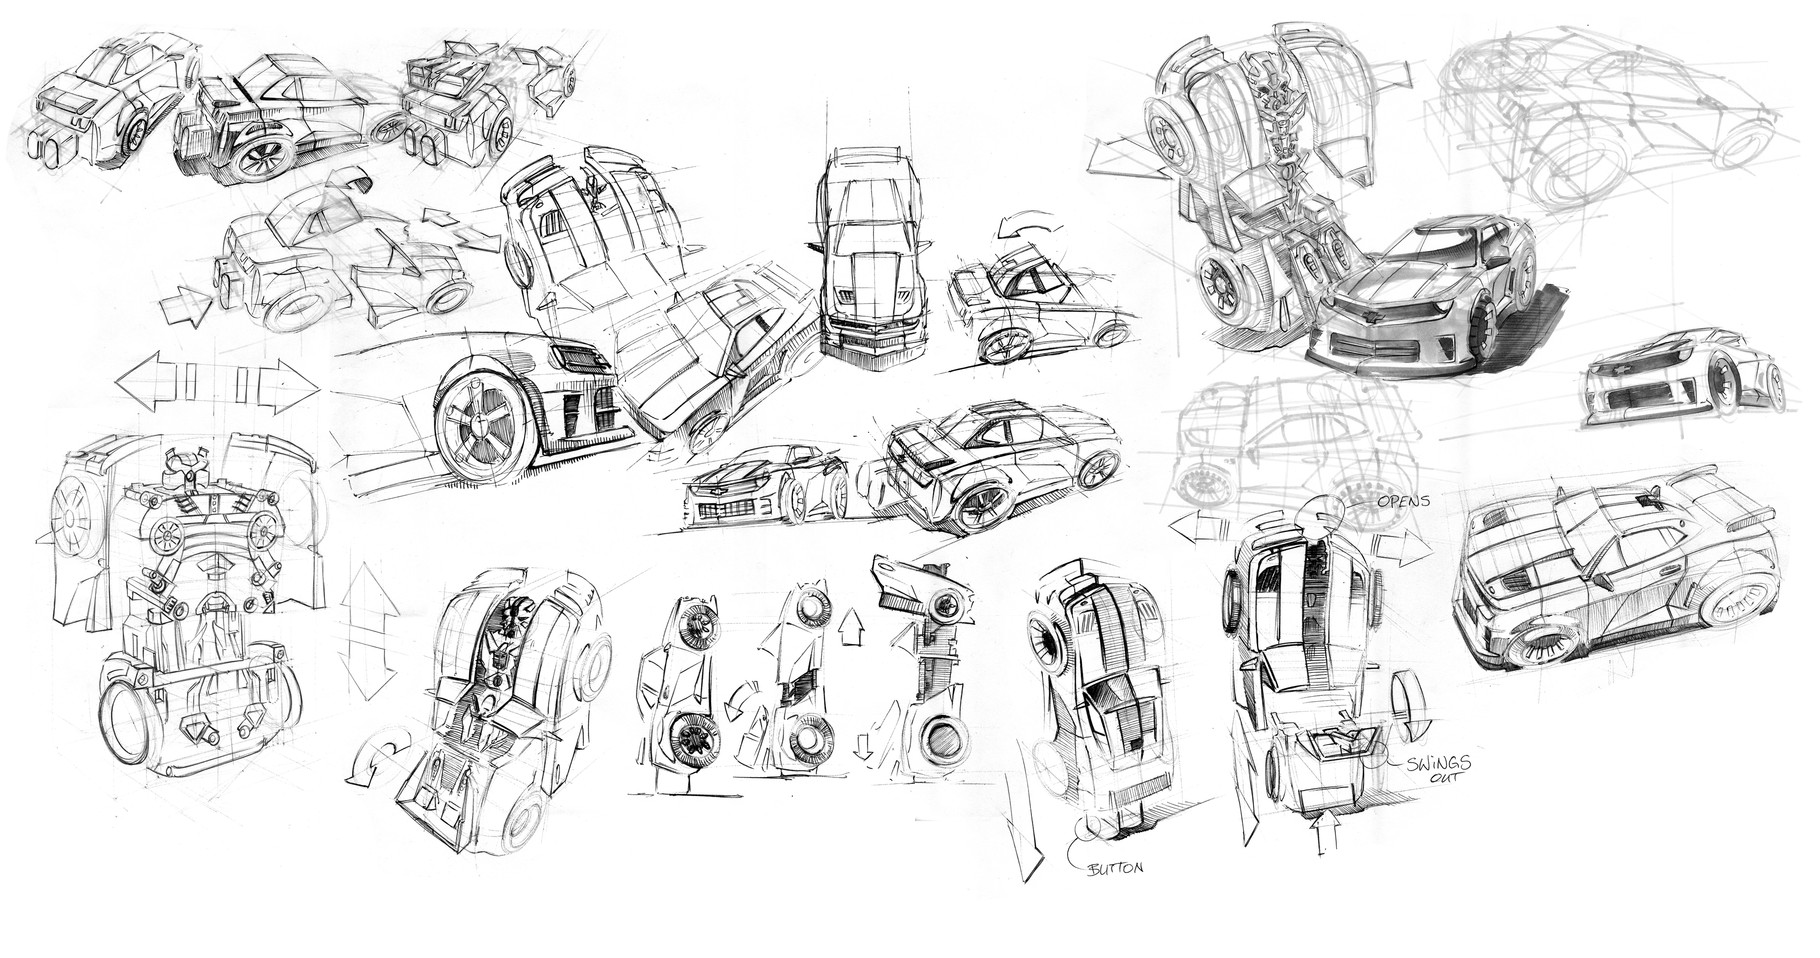 Sketchbook 06 - Peter Bartels - Illustration - Concept Art